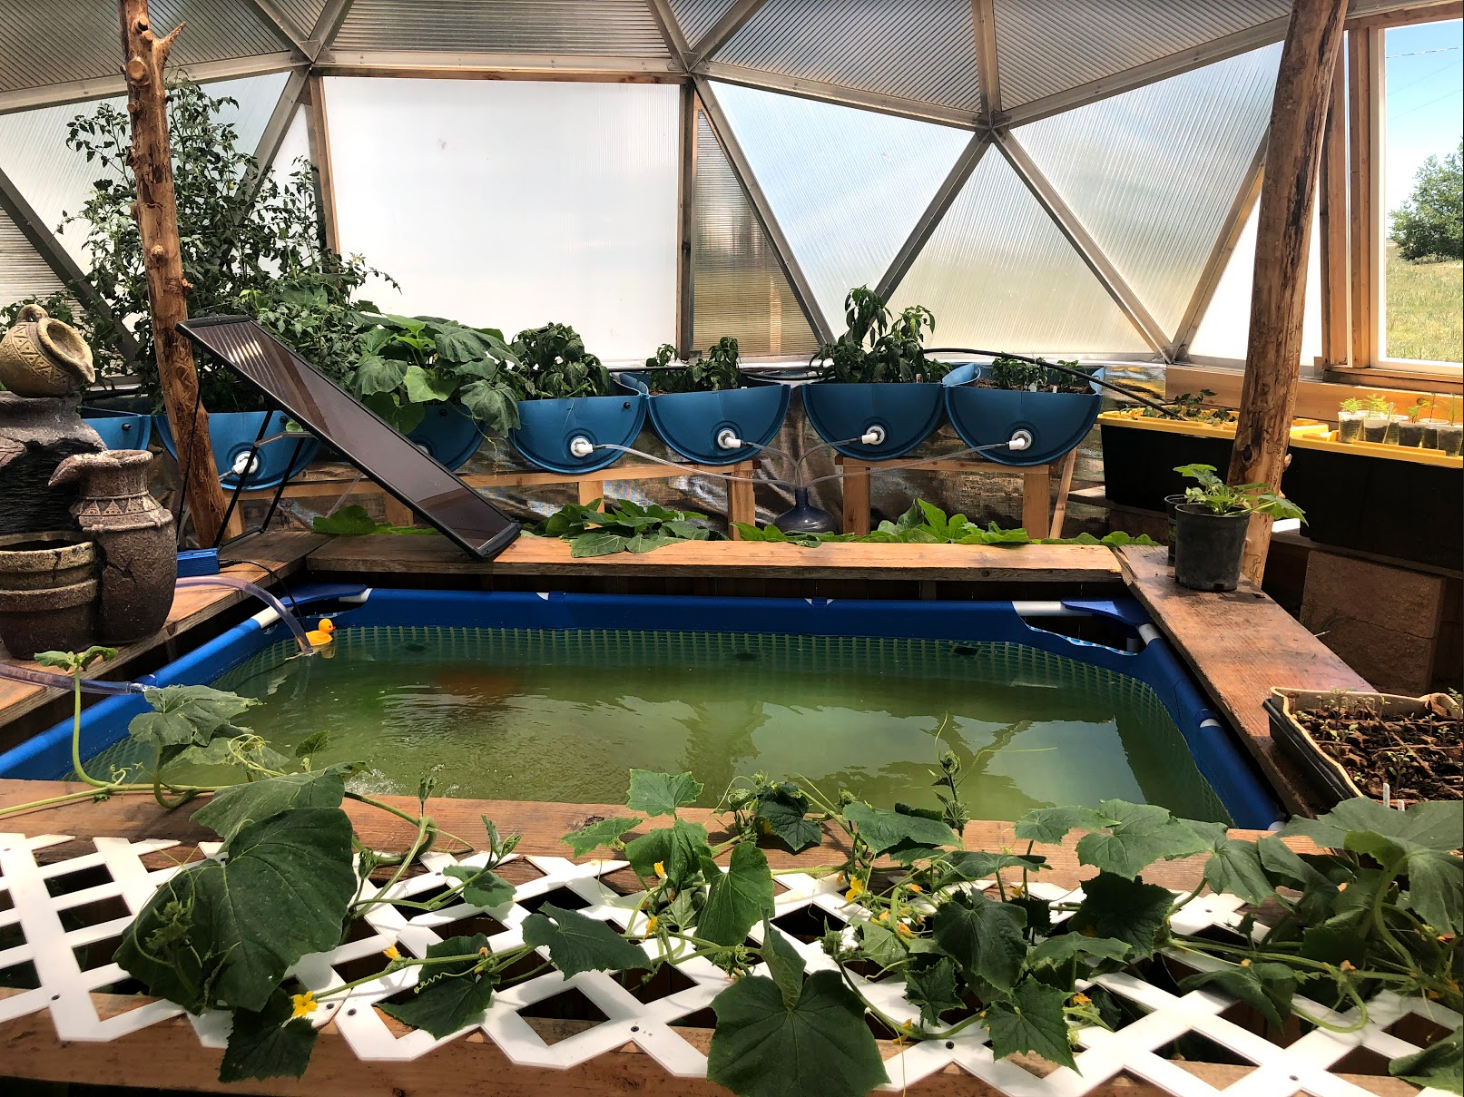 Versatility to meet your needs - We build multi-purpose domes that can serve as an excellent growing space, recreational space or used for educational purposes. The possibilities are endless. Learn more about how people are using their domes here!